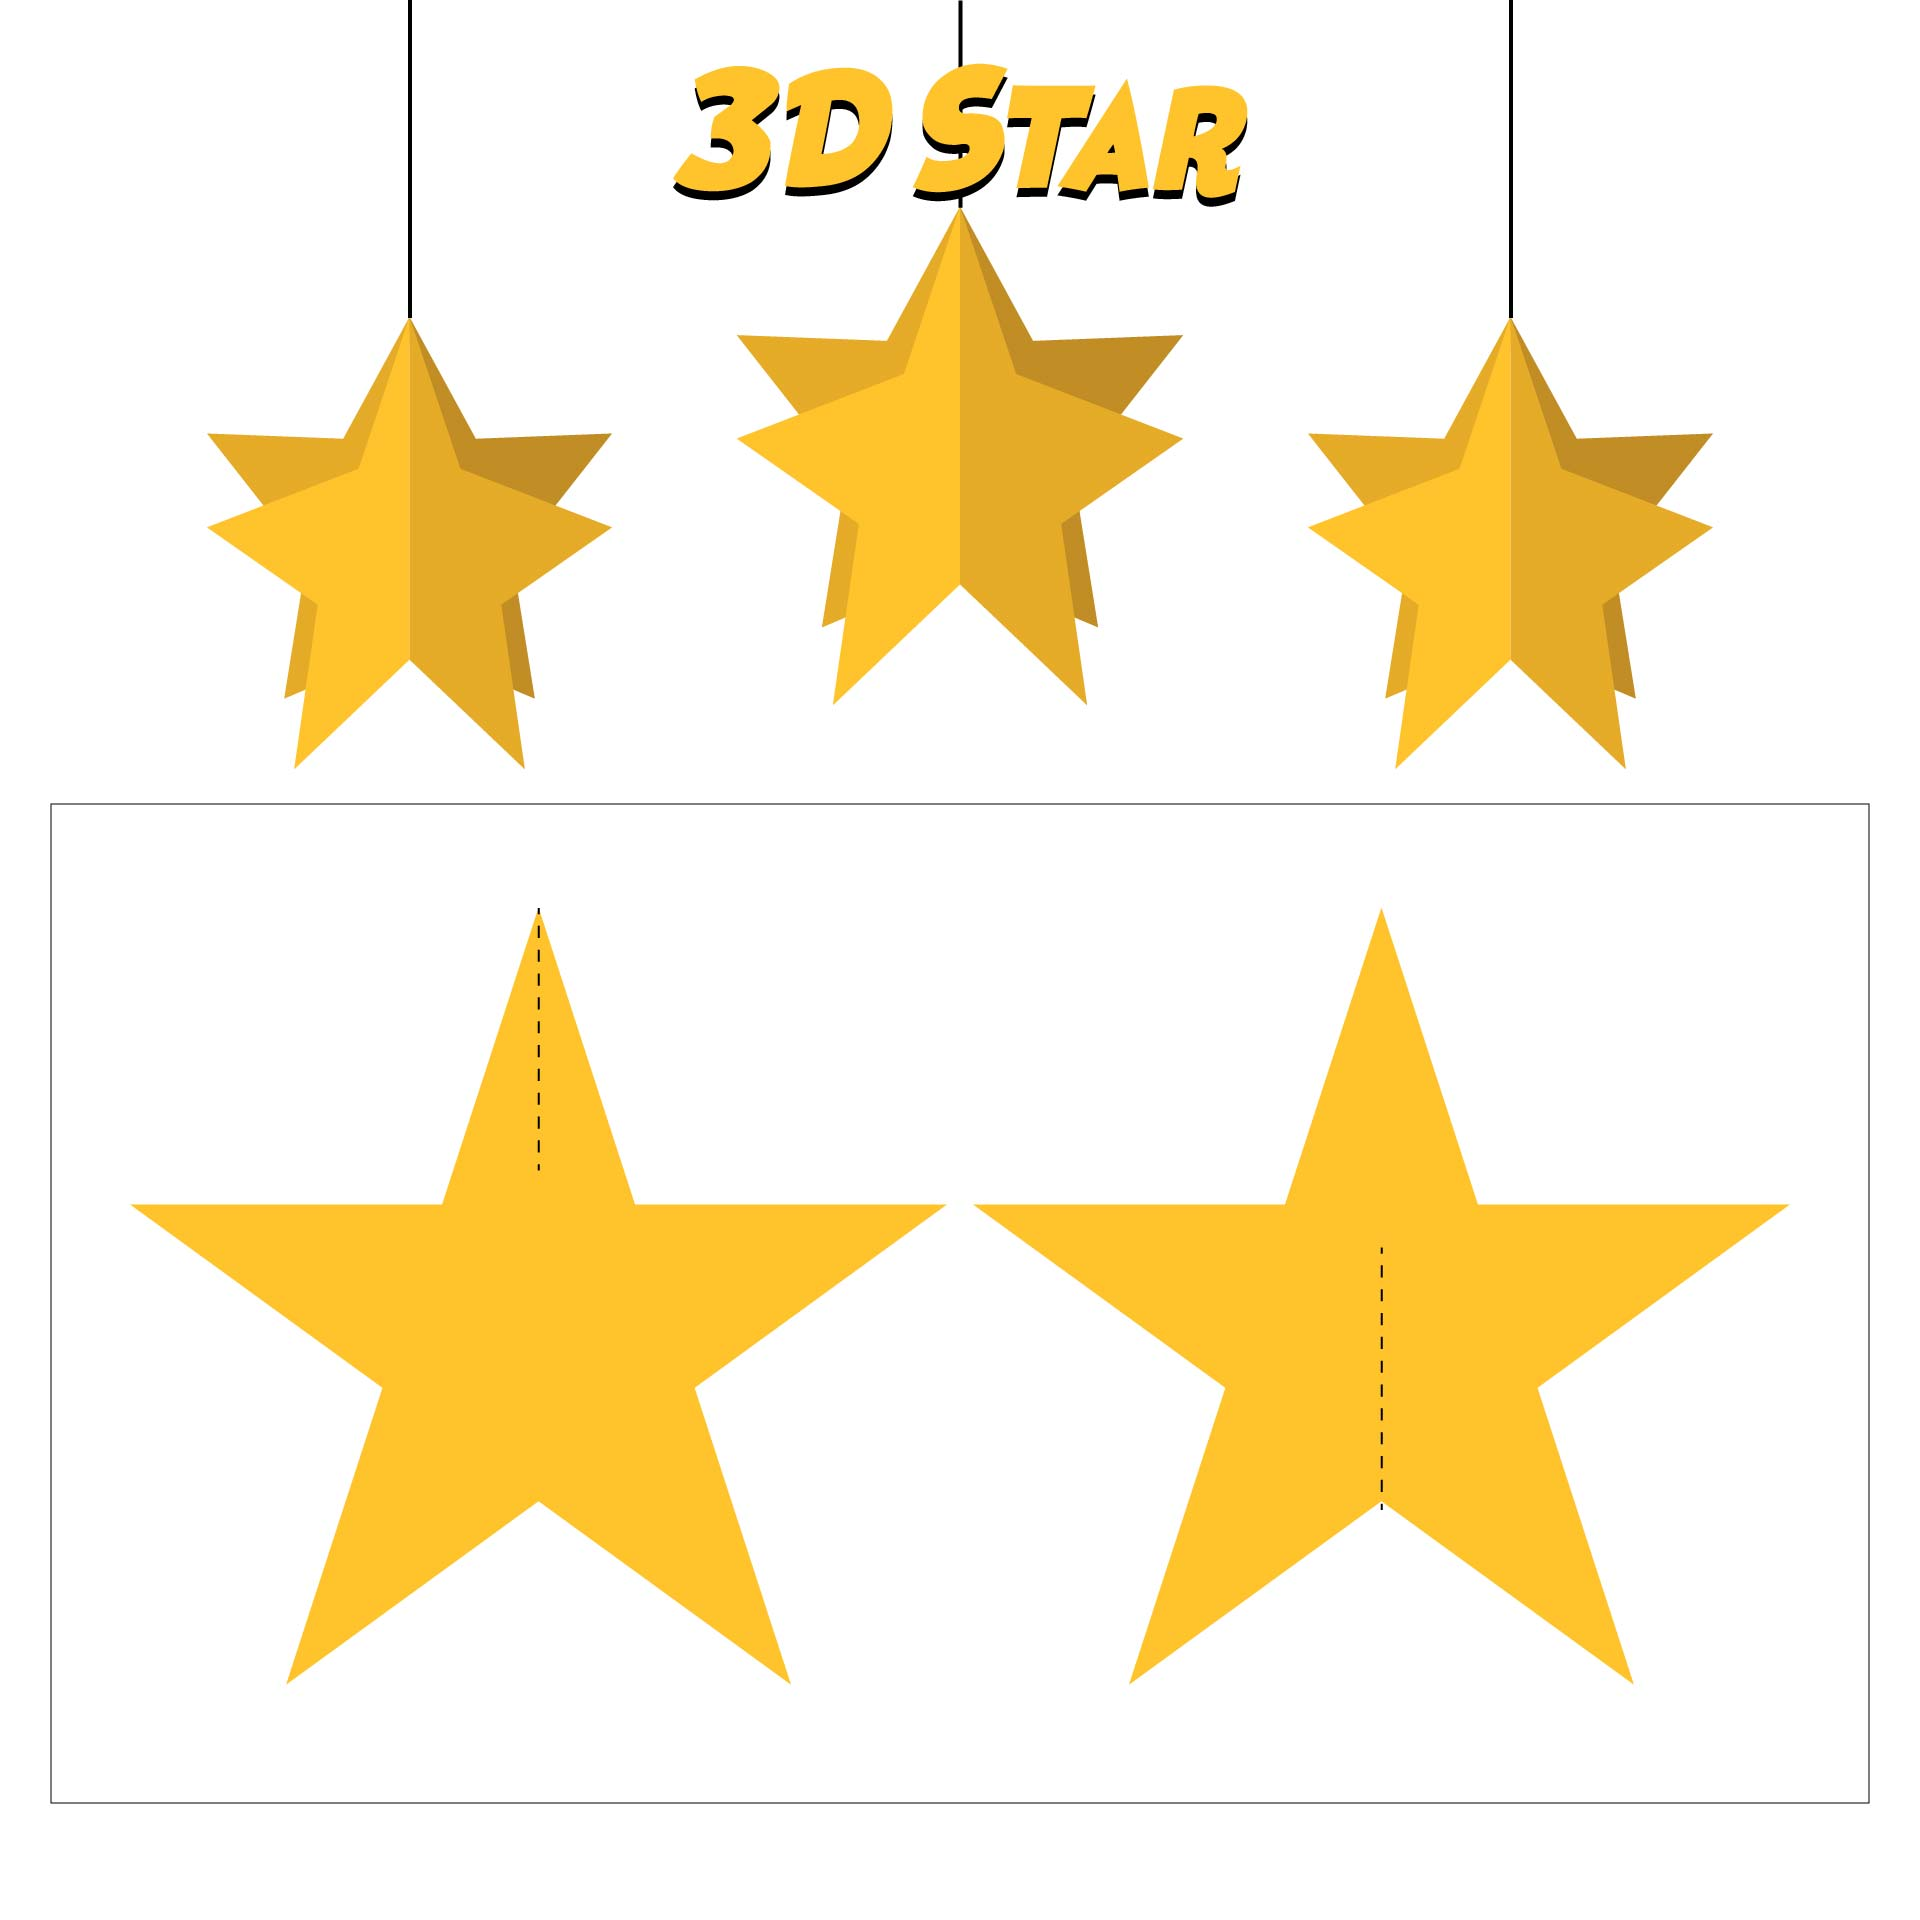 3D Star Ornament Template